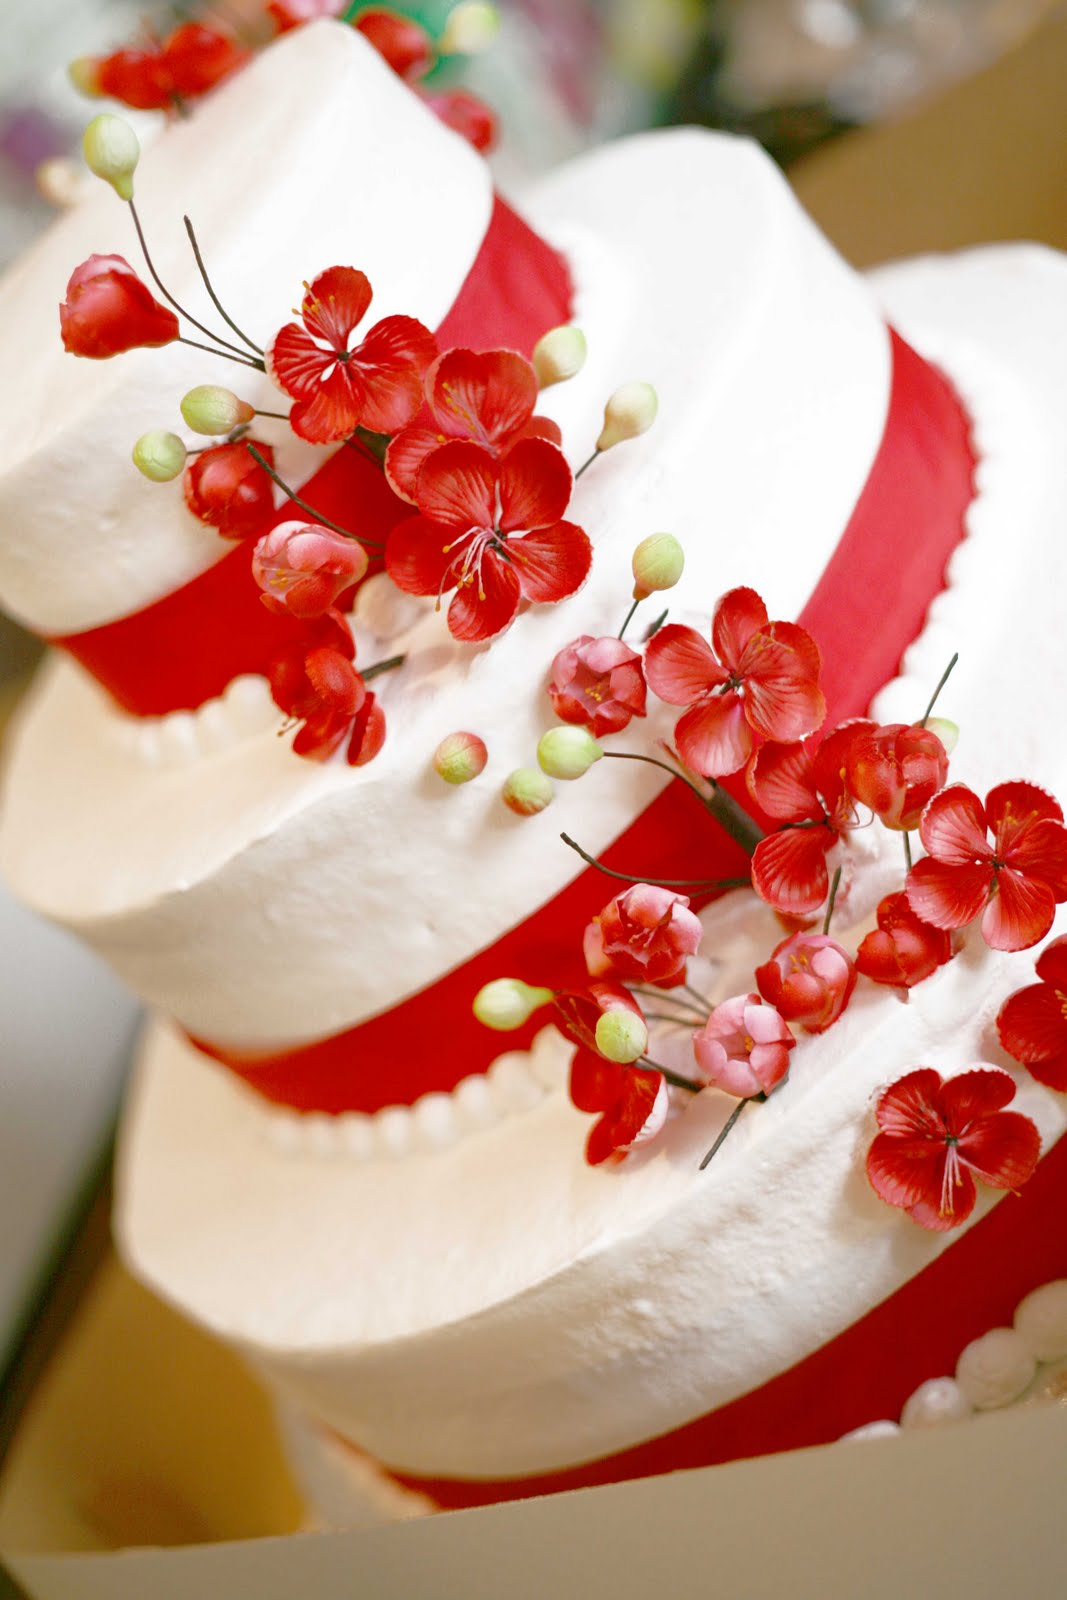 Hectors Custom Cakes White Cake With Flowers 3 Tiered Stacked